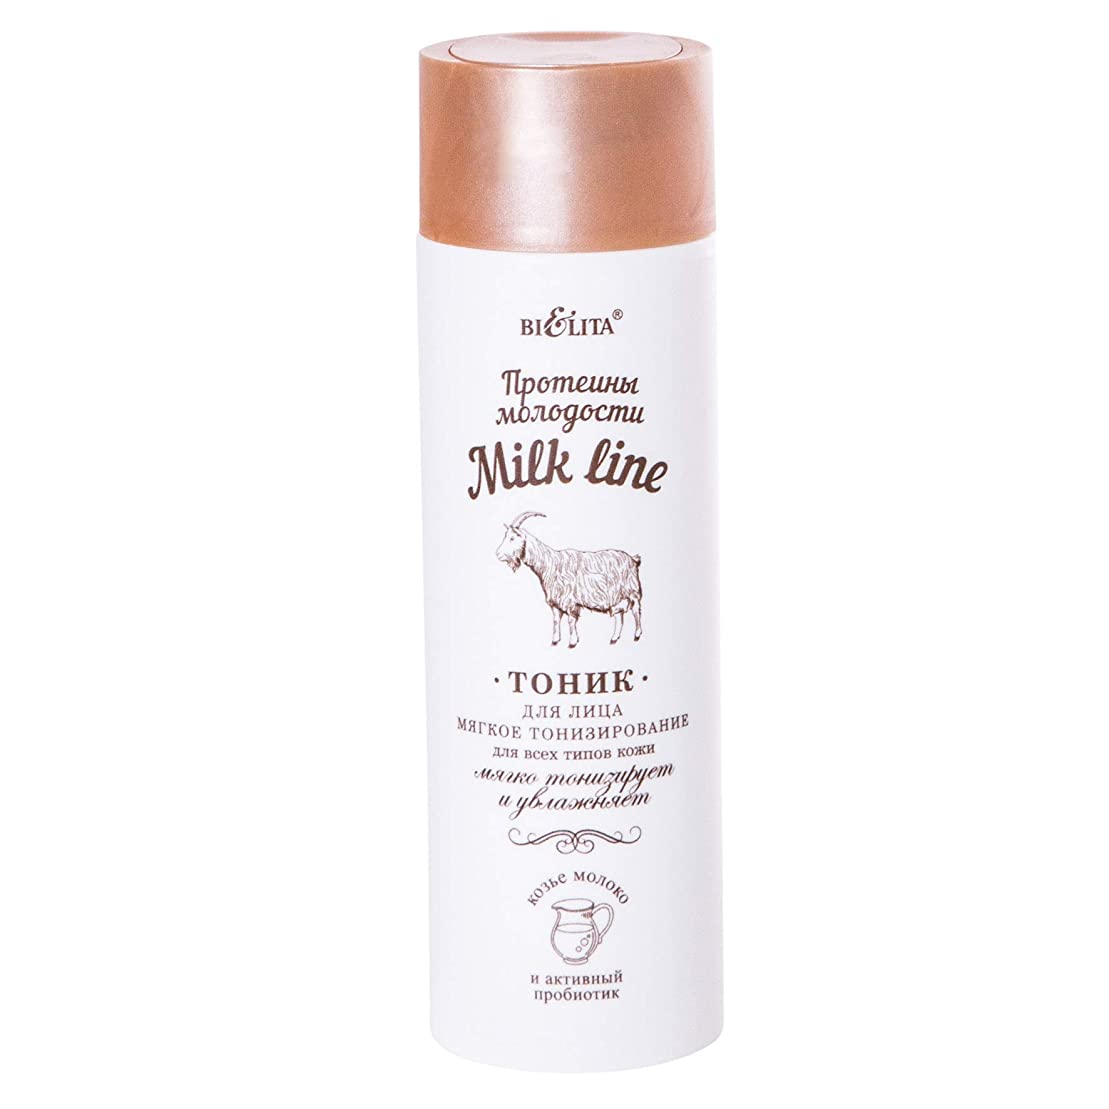 居住者紫のマートBielita & Vitex | Milk Line | Facial Toner SOFT TONING for all skin types | Goat Milk Proteins | Toniskin | Vitamins A, C, E, F | Coconut Oil | 200 ml